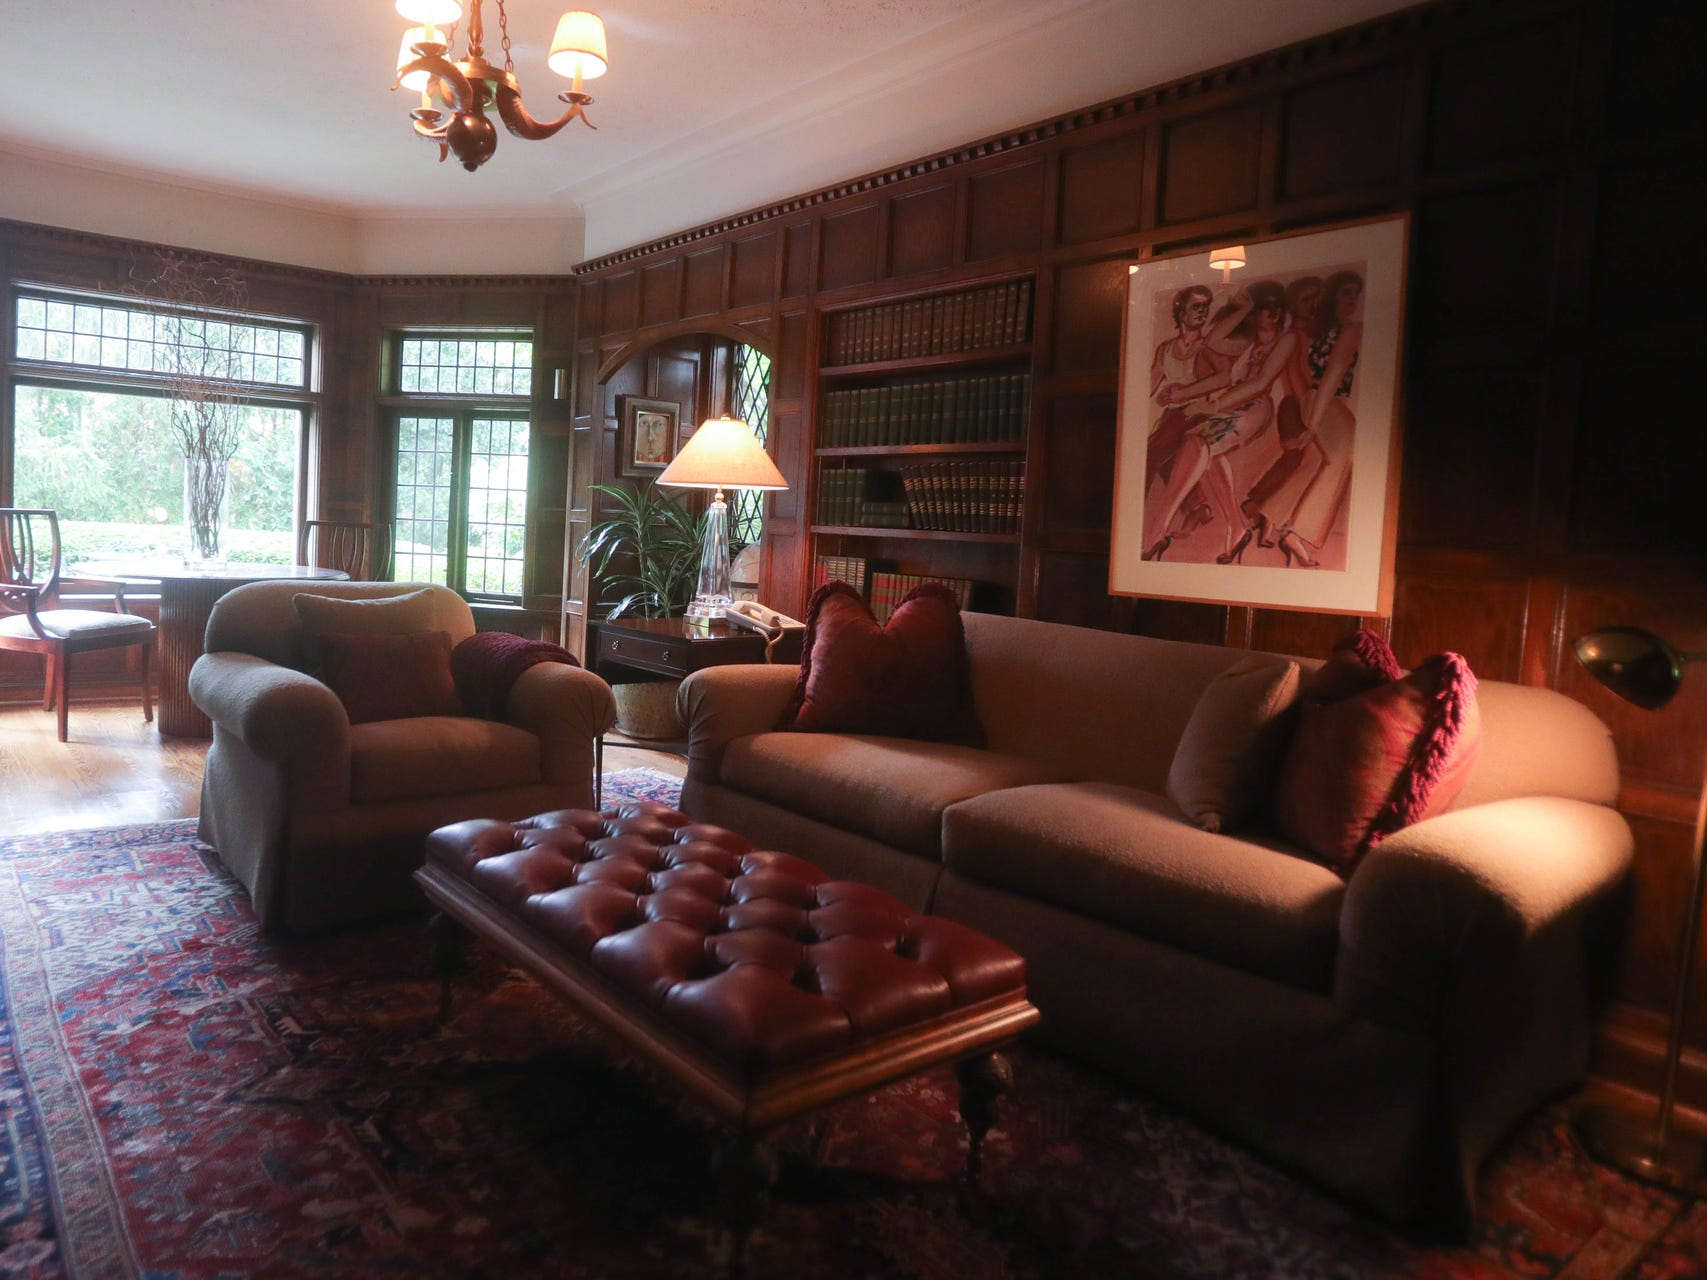 The library is wrapped in carved paneling with a leaded glass bay at the end. The paneling hides a secret compartment.